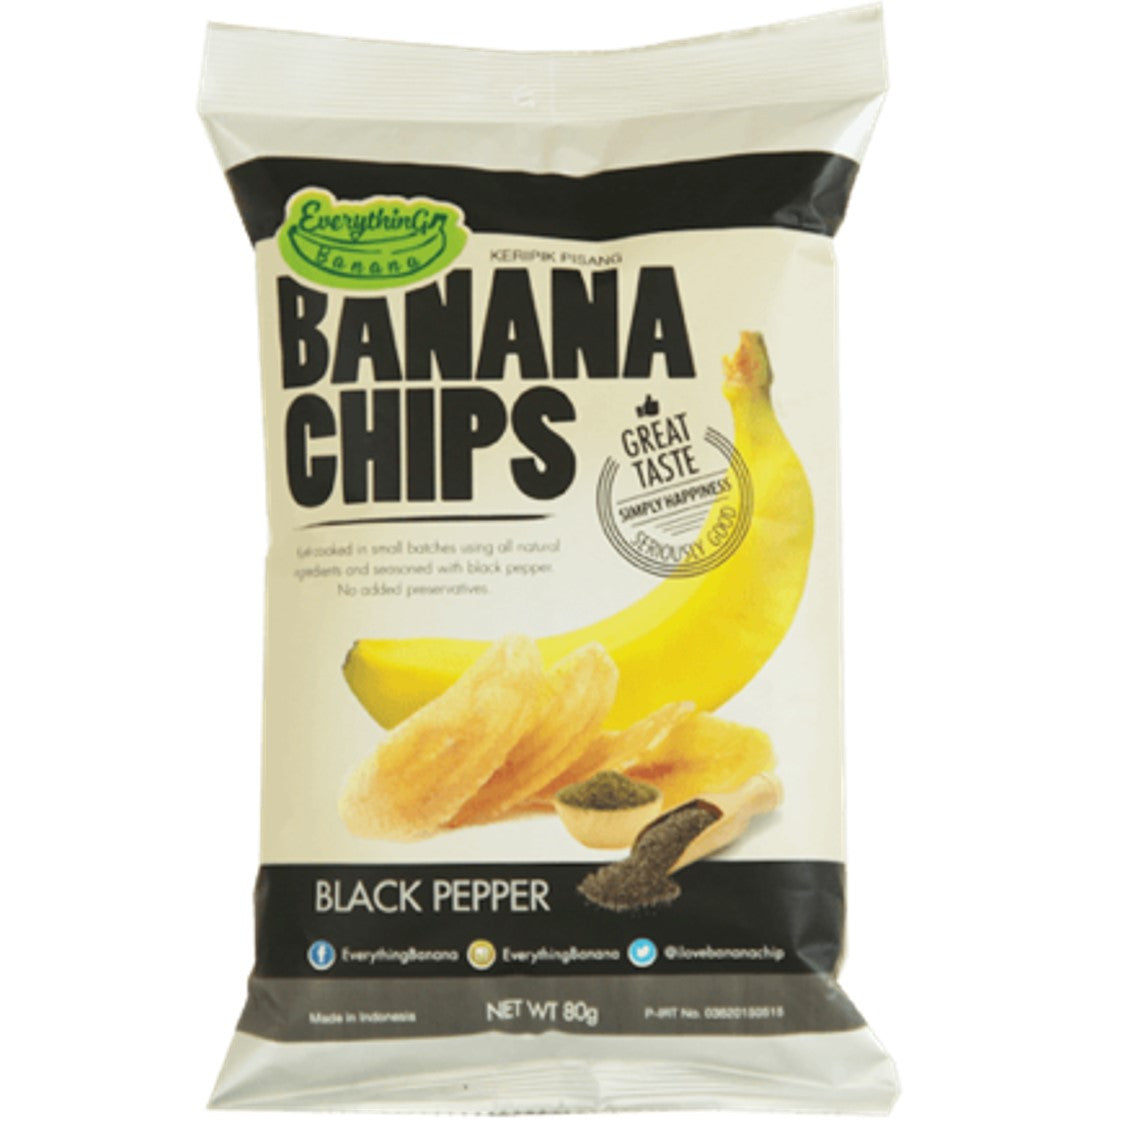 Everything Banana Chips - Black Pepper, 80g.